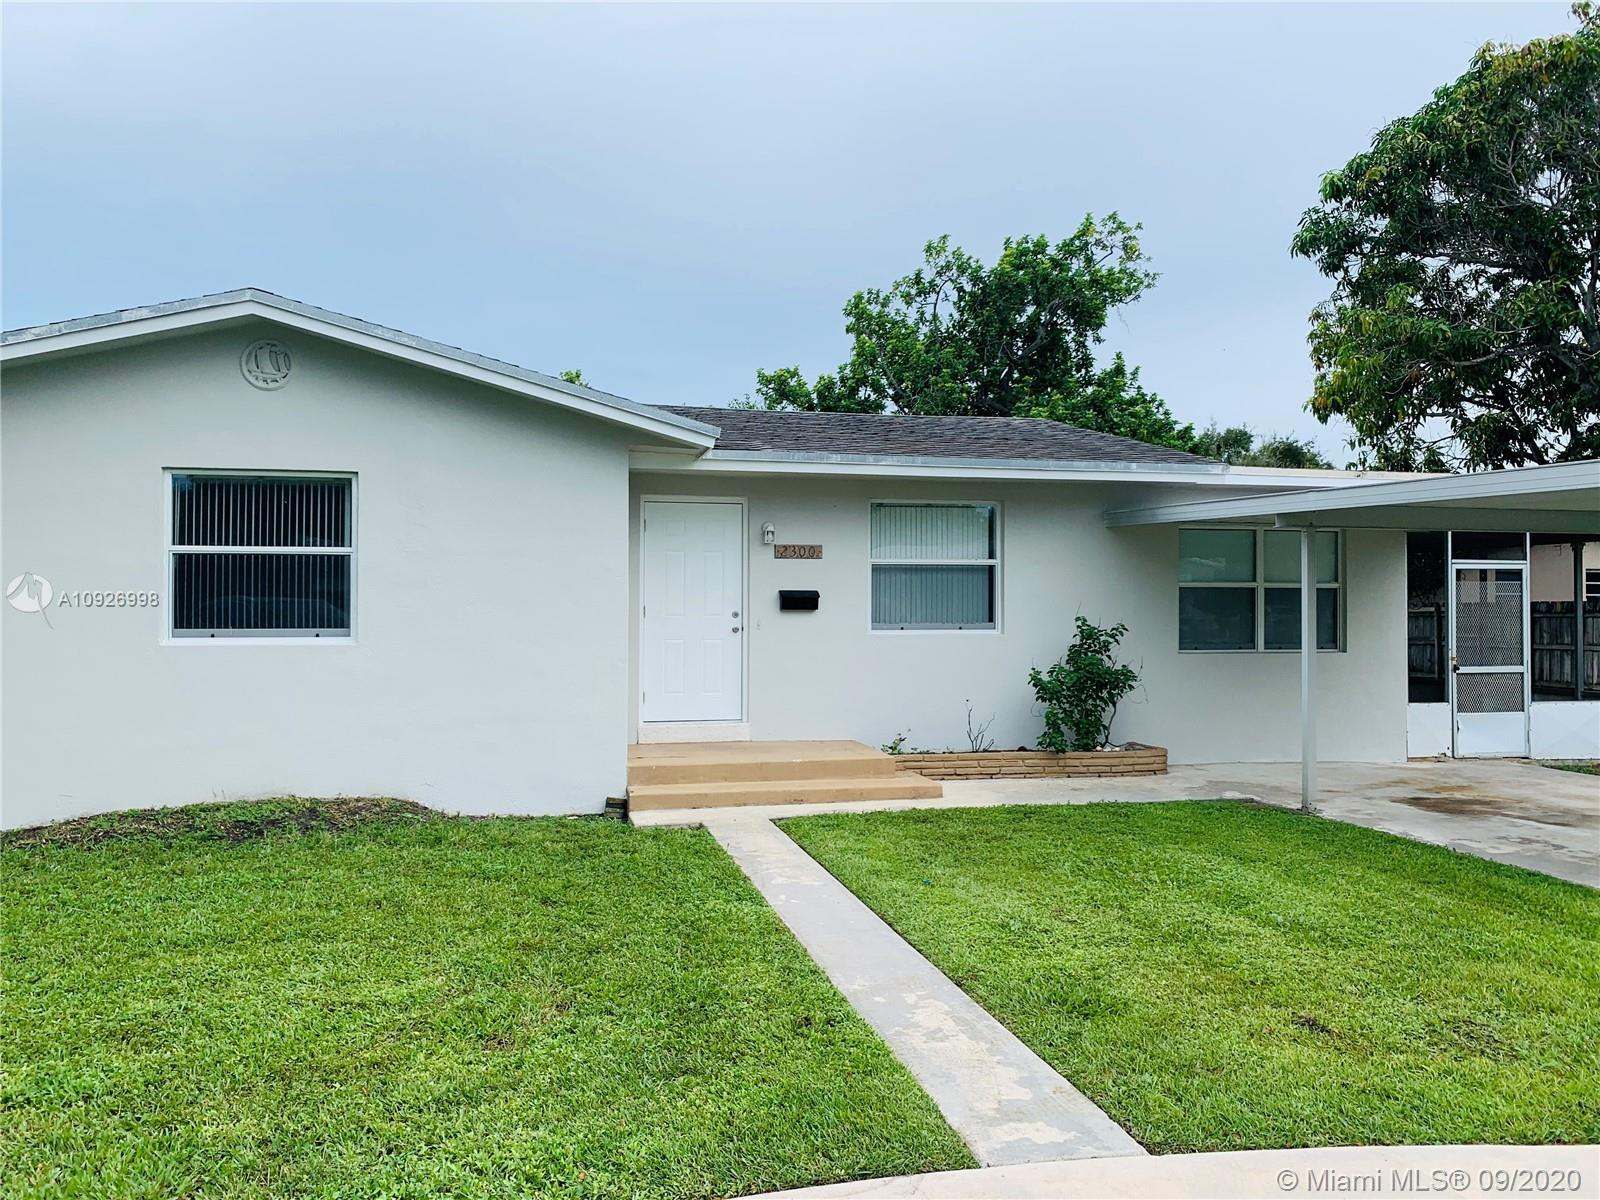 Nicely remodeled house in Hollywood. Is a 3/2 with a screened patio and cover parking. About 1,900 s